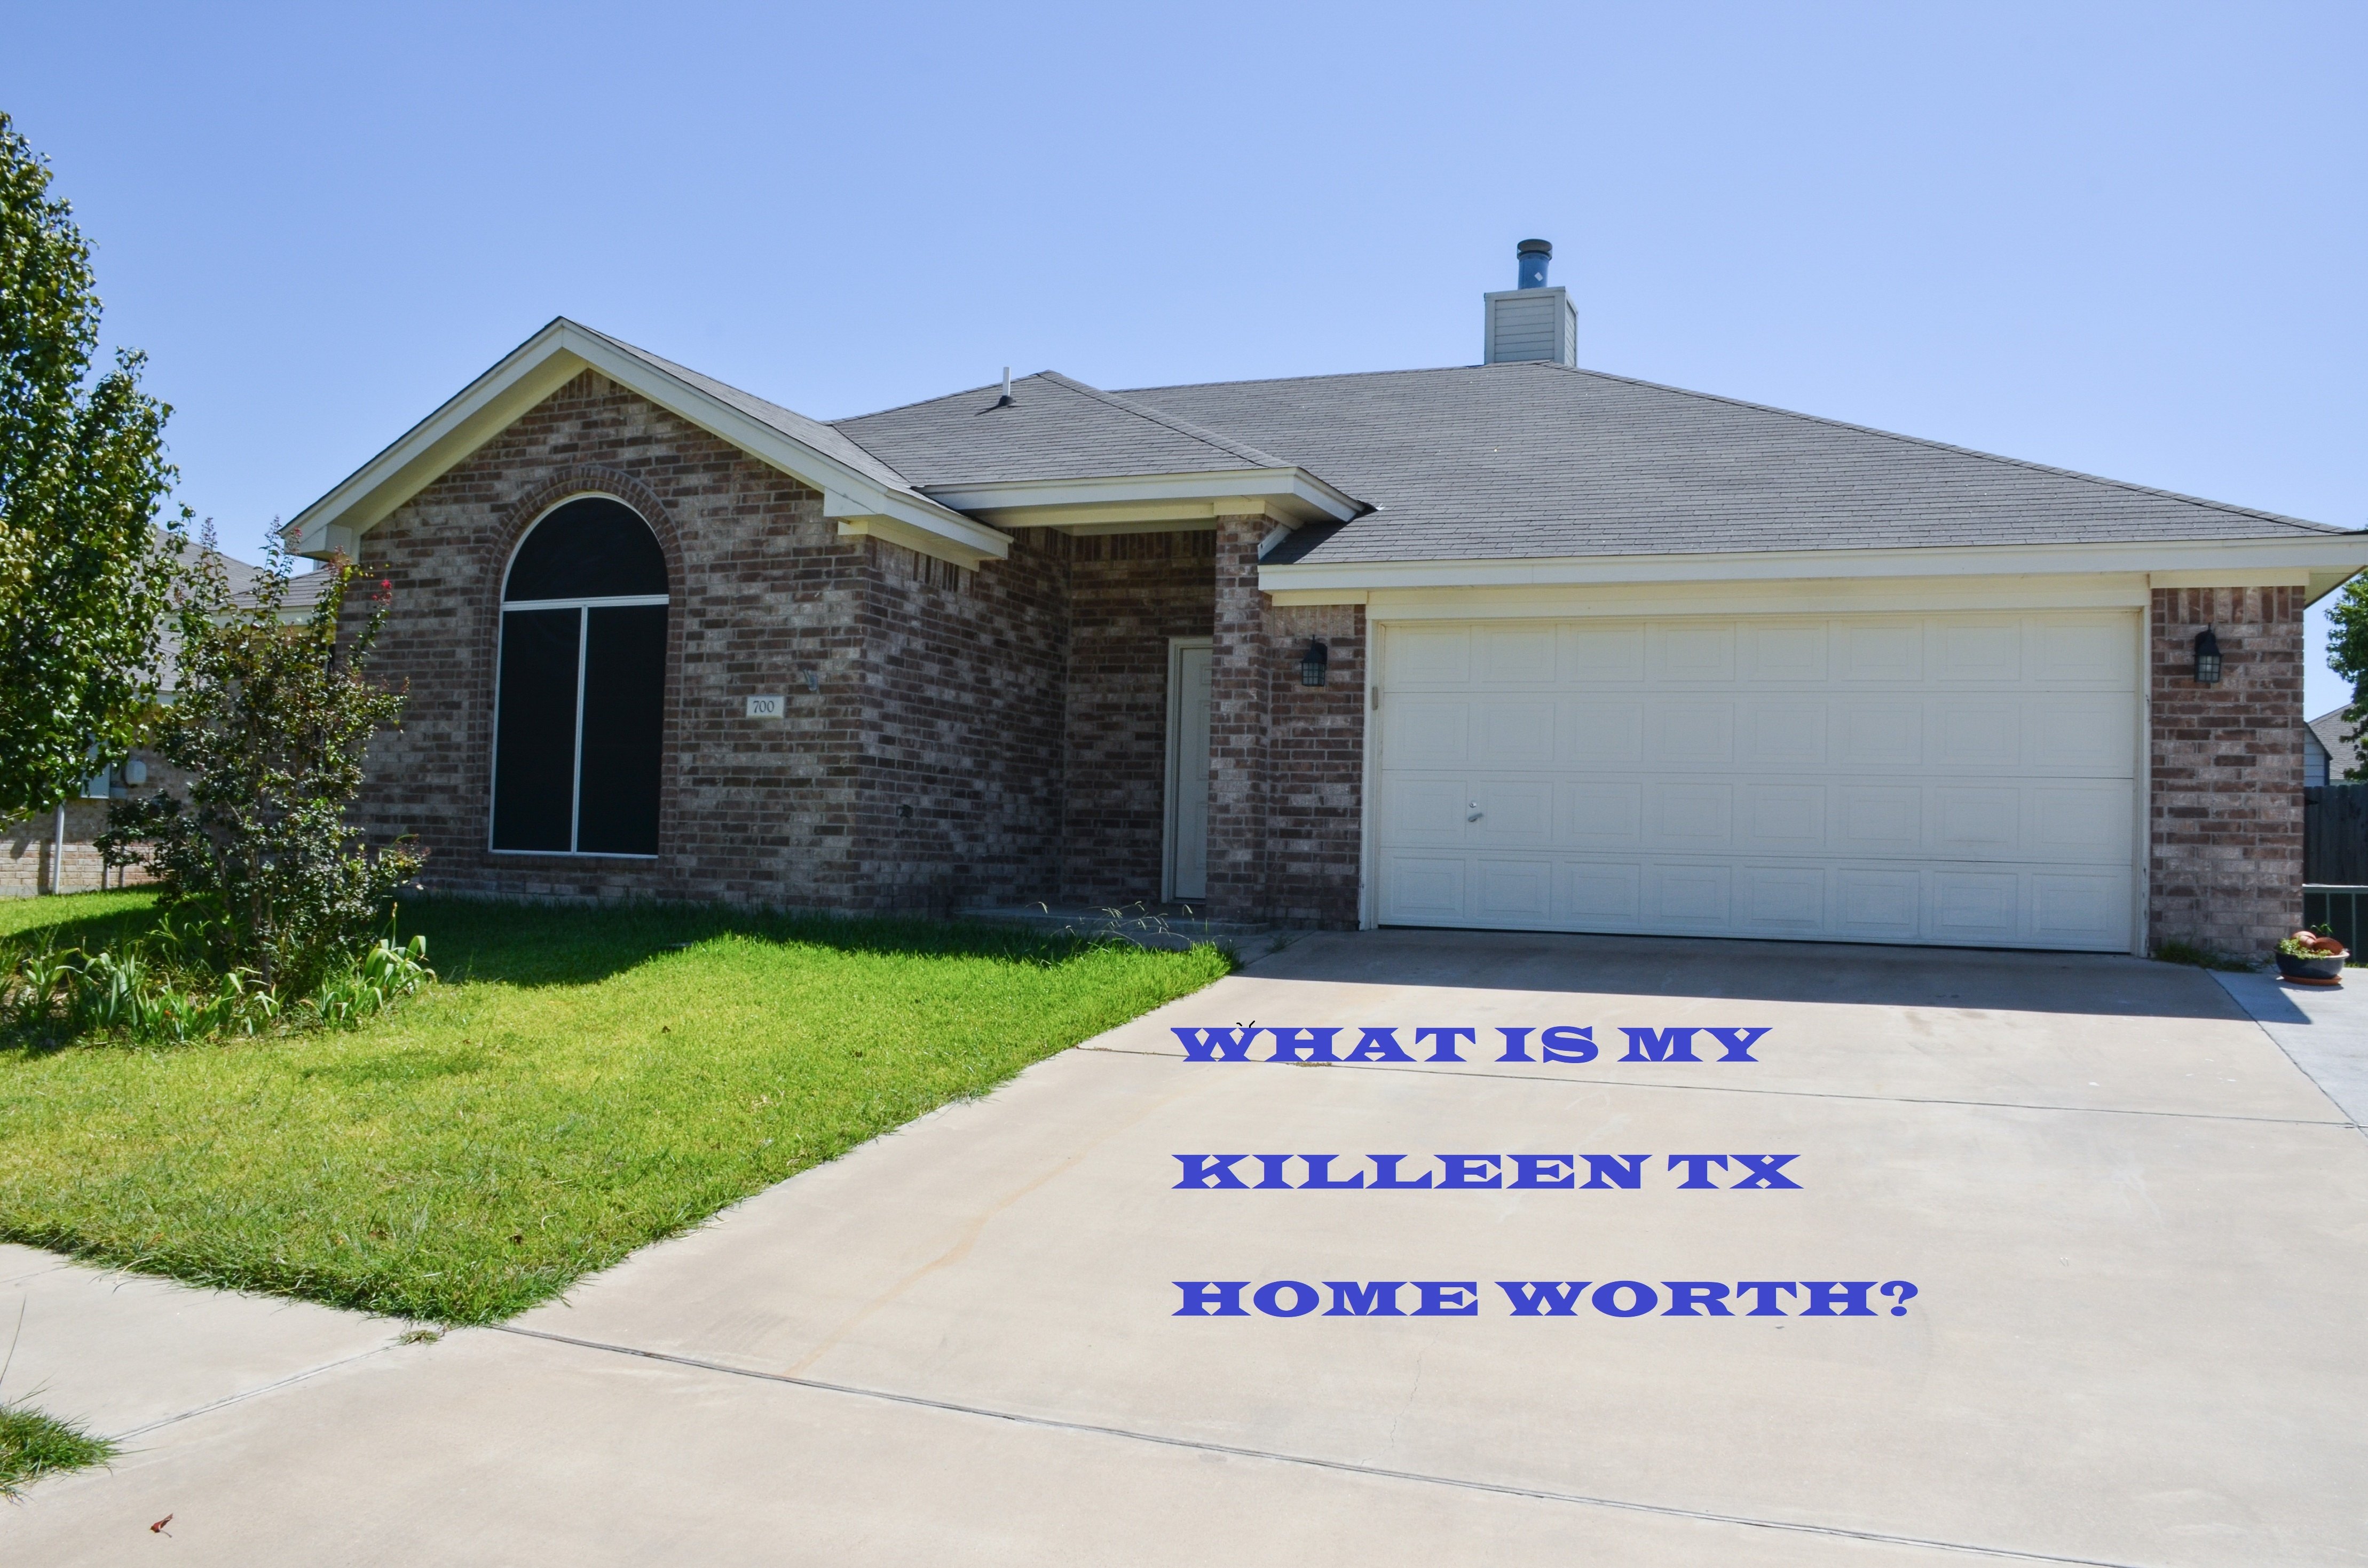 WHAT IS MY KILLEEN TX HOME WORTH?